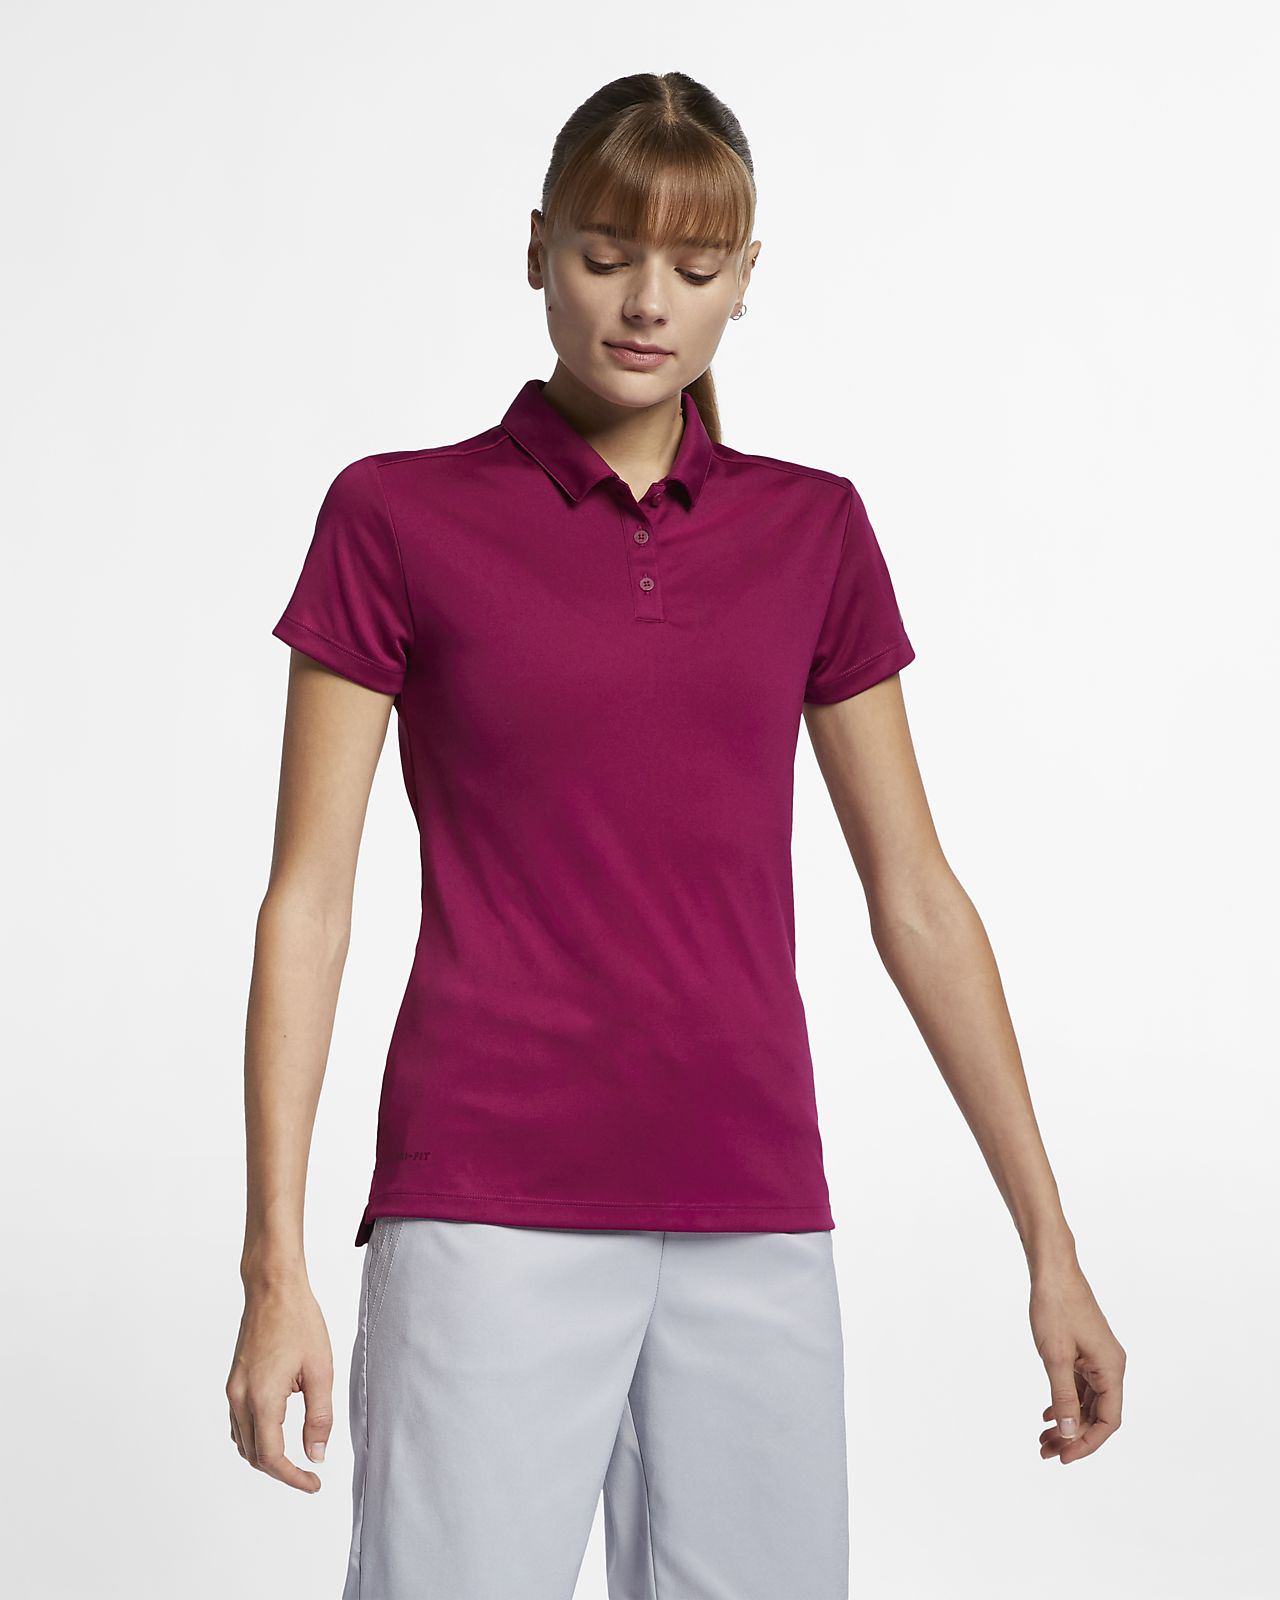 bf676b8a Nike Dri-FIT Women's Golf Polo. Nike.com NO